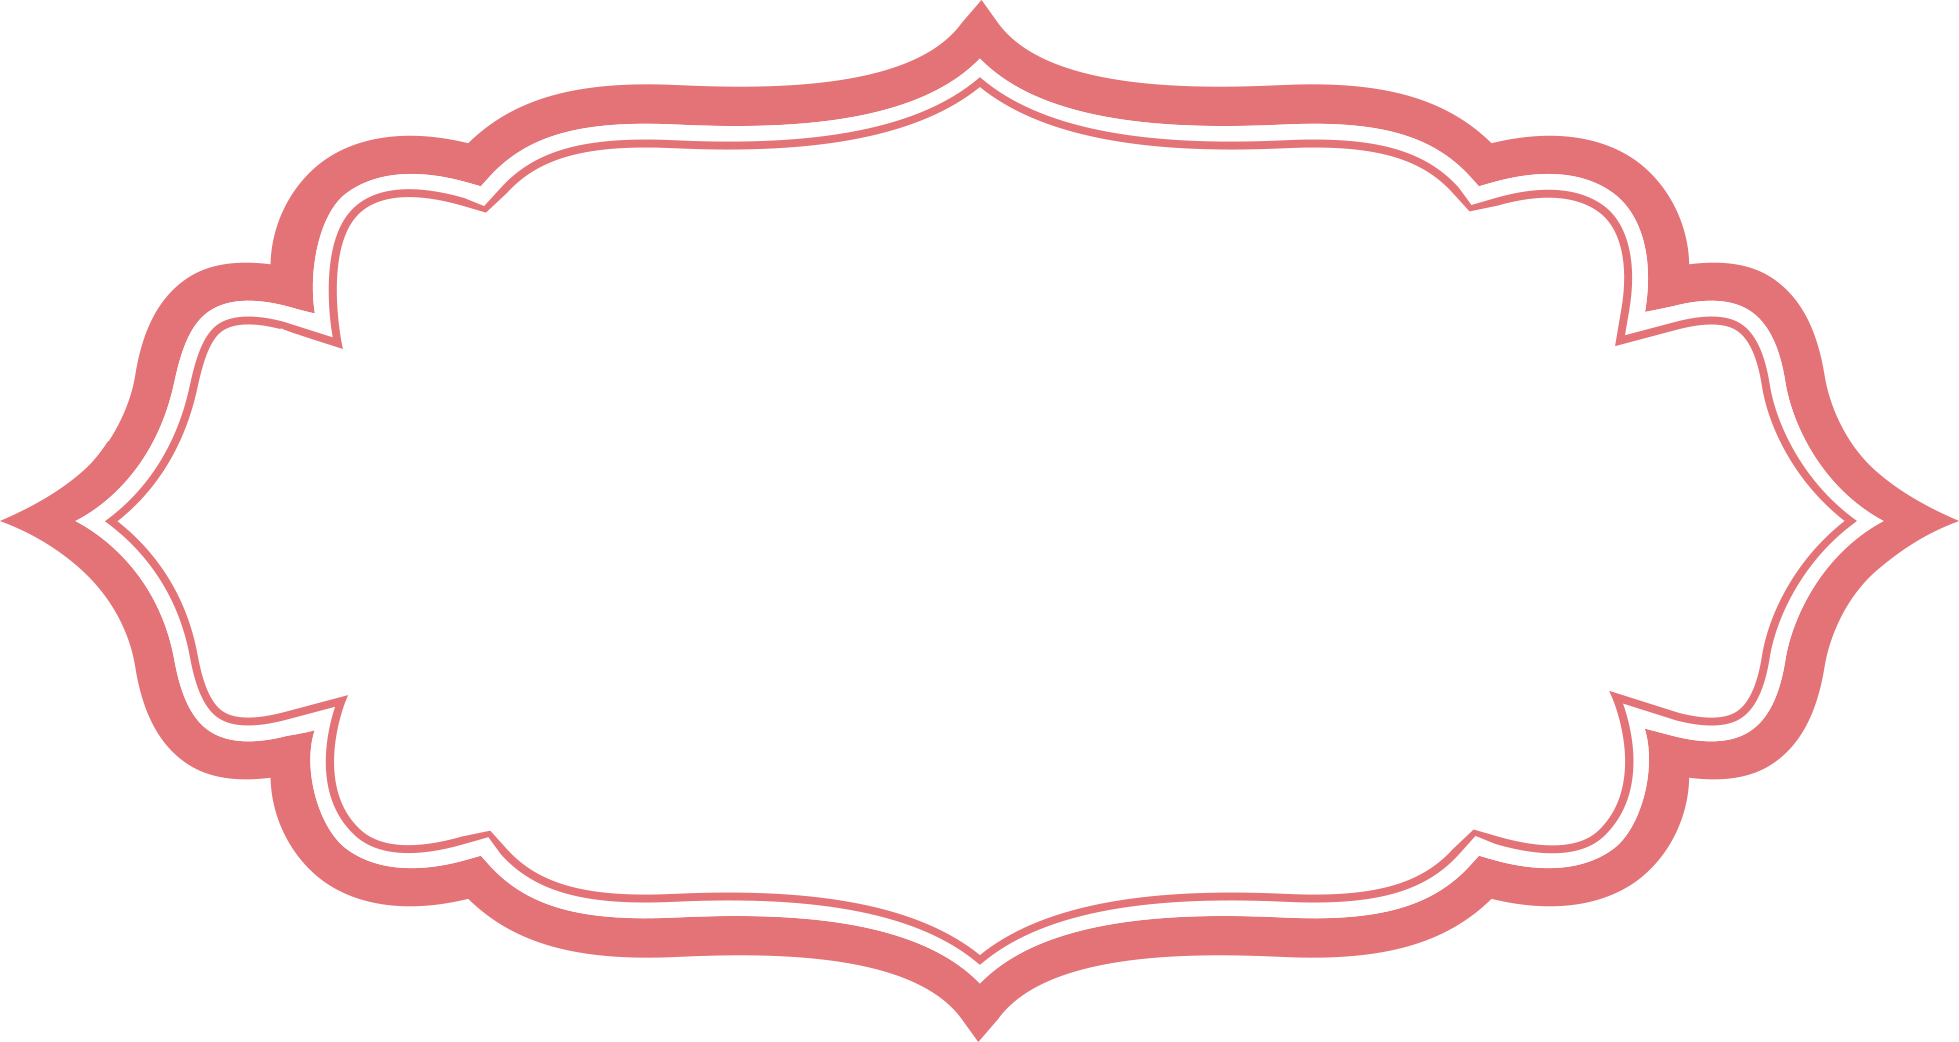 graphic royalty free download bracket vector frame #110111307